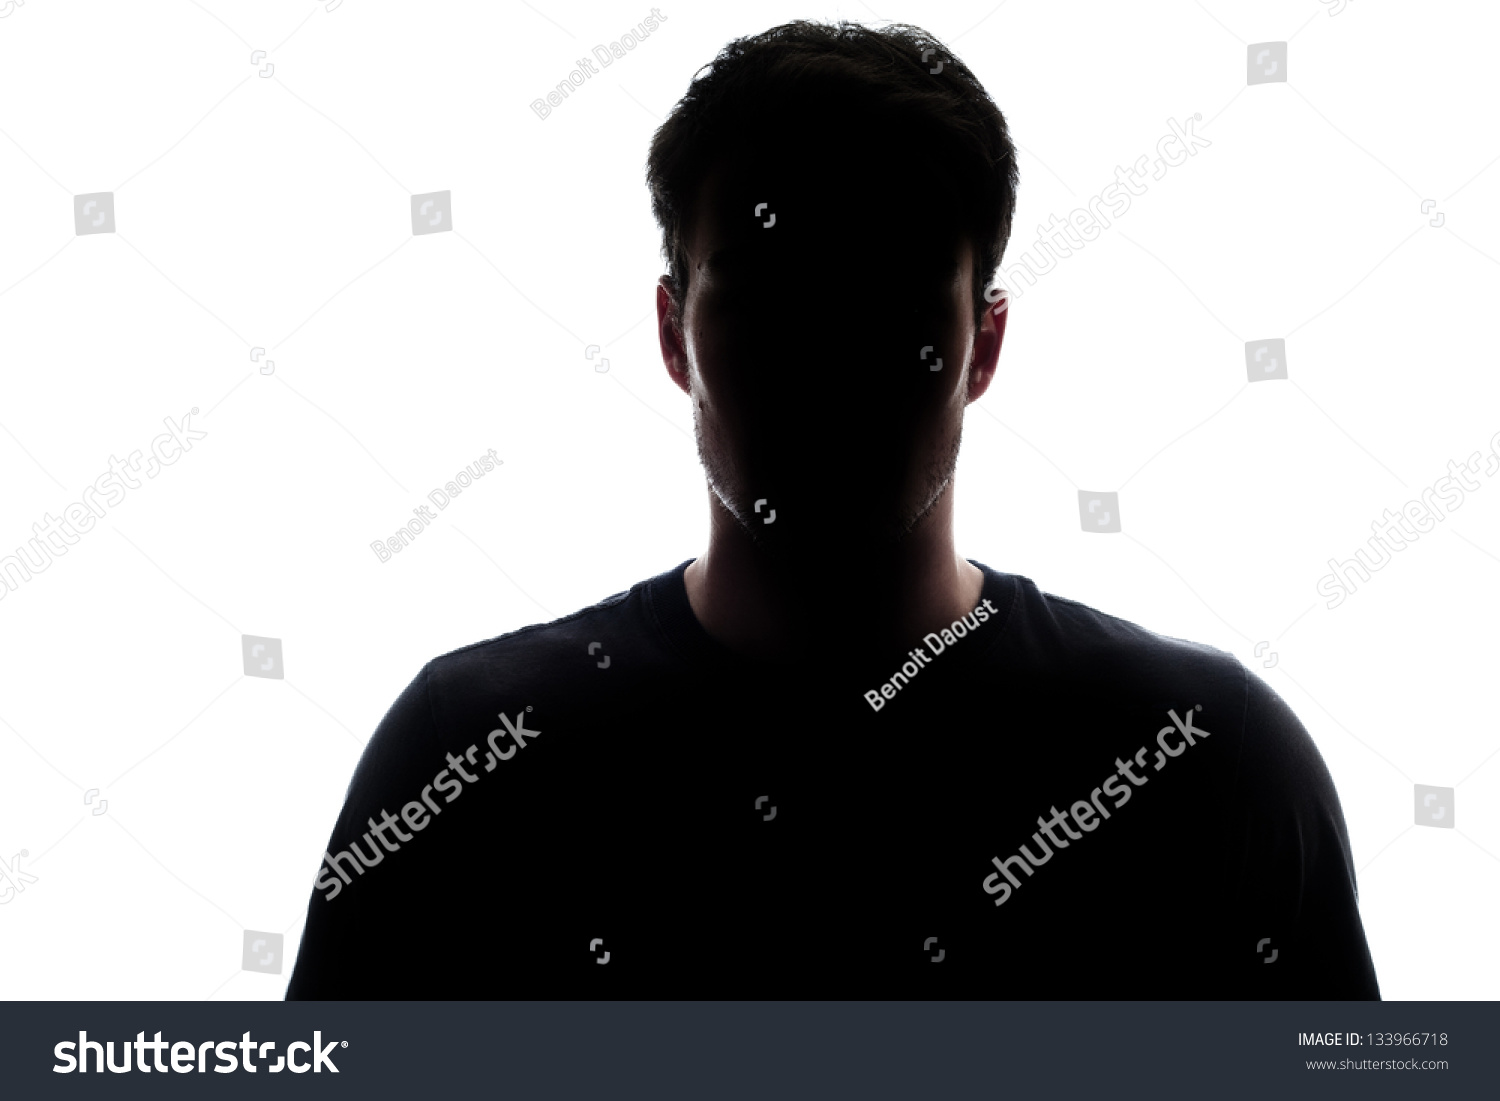 Typical upper body man silhouette wearing a t-shirt - mysterious face #133966718